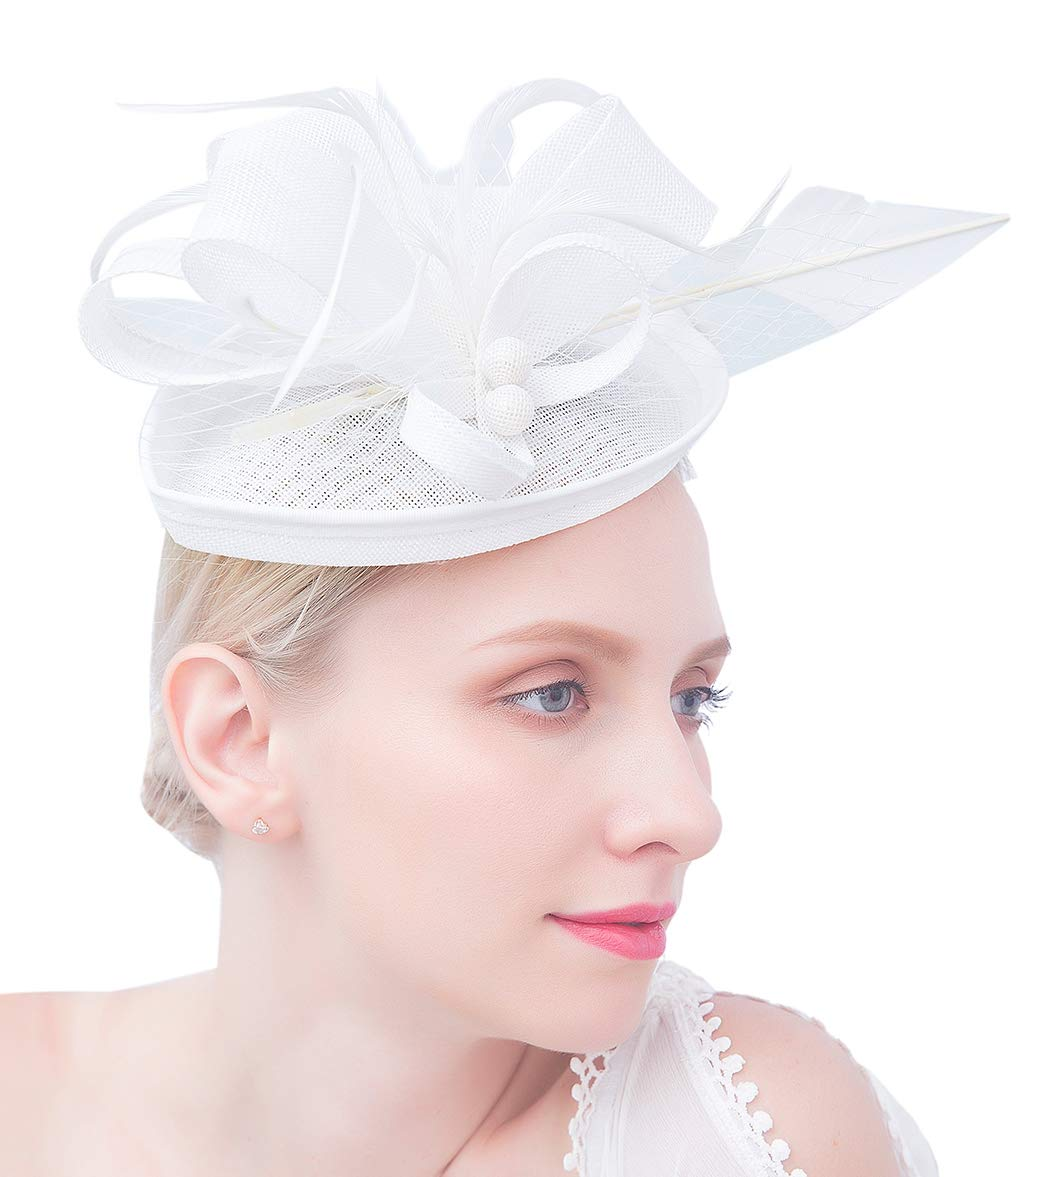 34924e3a Felizhouse Fascinator Hats for Women Ladies Feather Cocktail Party Hats  Bridal Headpieces Kentucky Derby Ascot Fascinator Headband (#2 Cambric  White). Store ...